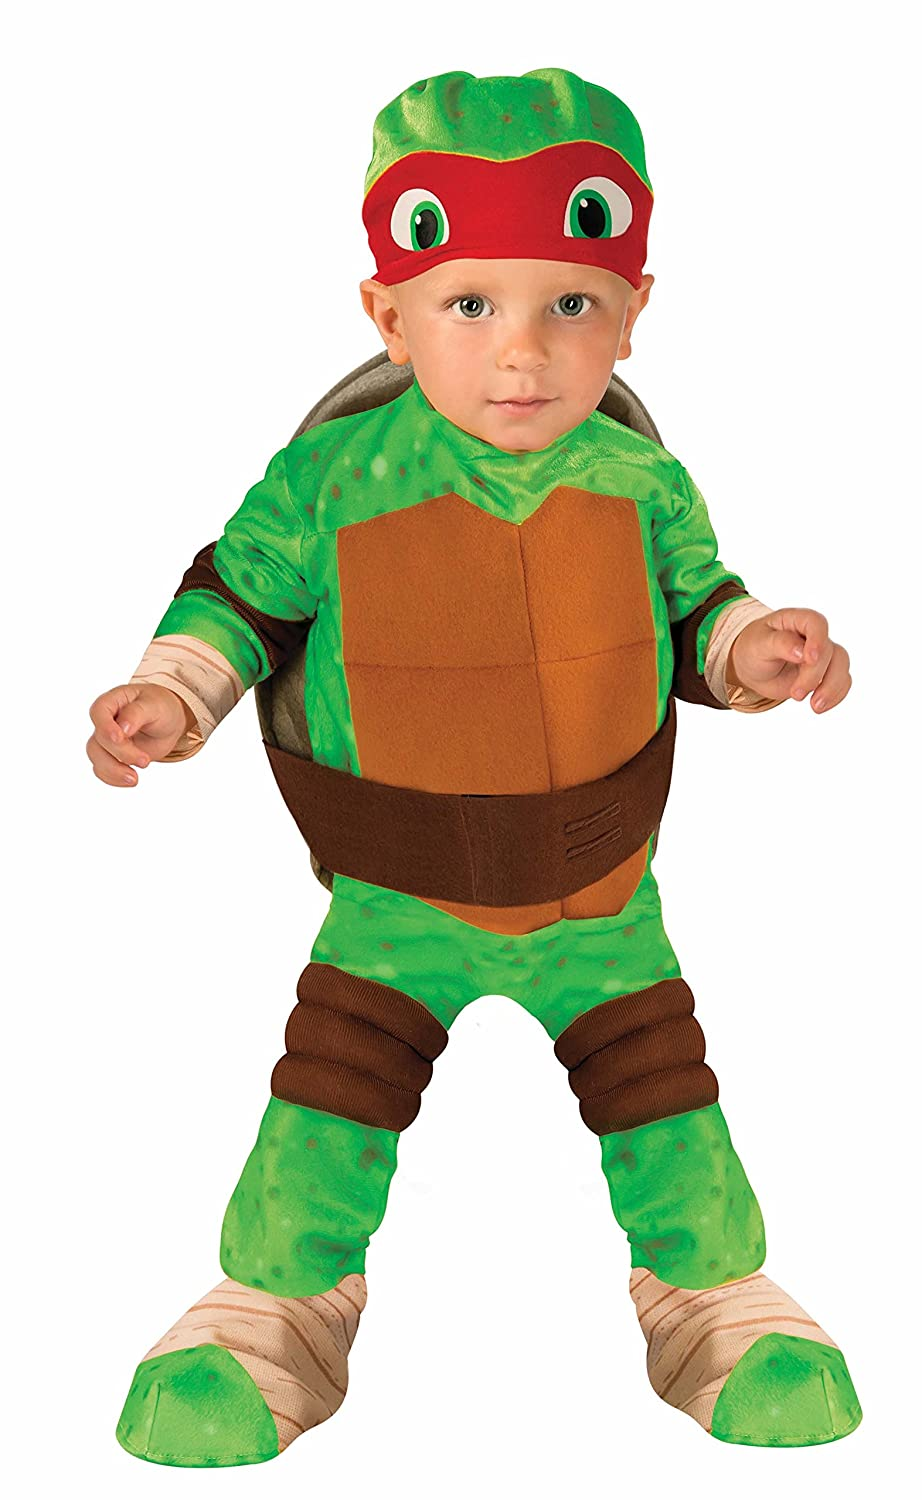 Nickelodeon Teenage Mutant Ninja Turtles Raphael Romper Shell and Headpiece Rubies Costumes - Apparel